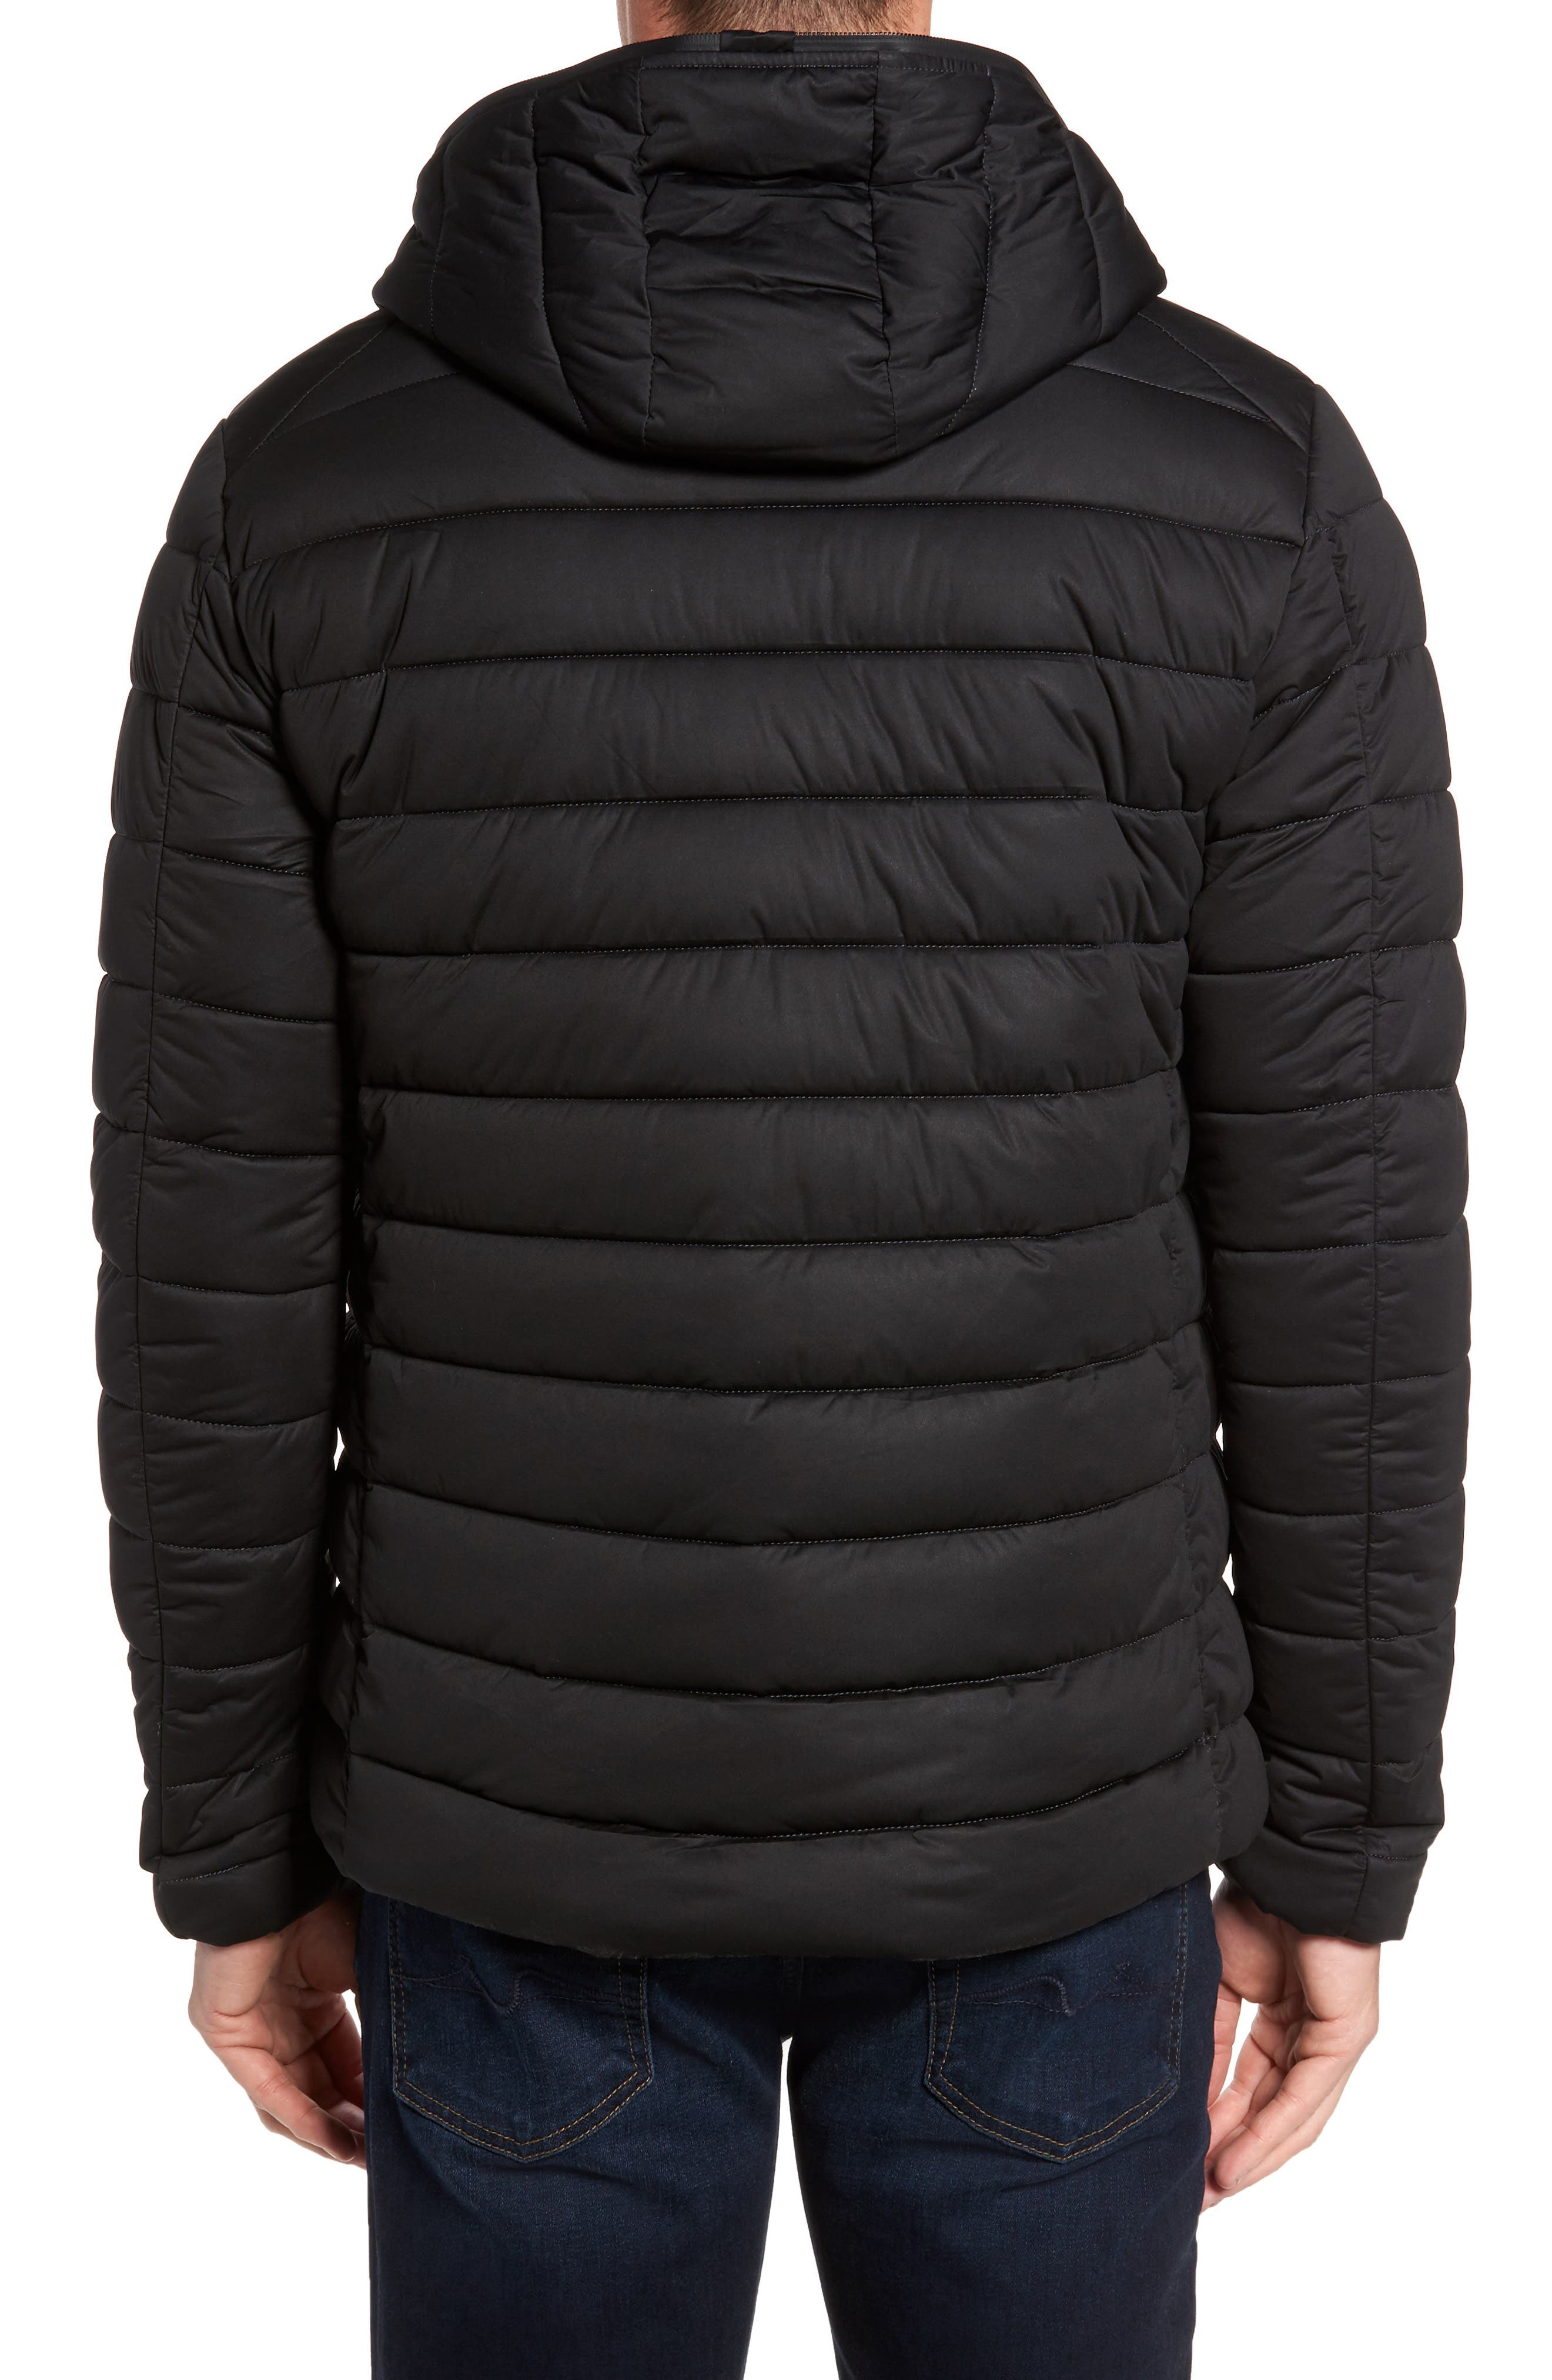 Hooded Water Resistant Puffer Jacket,                             Alternate thumbnail 2, color,                             001